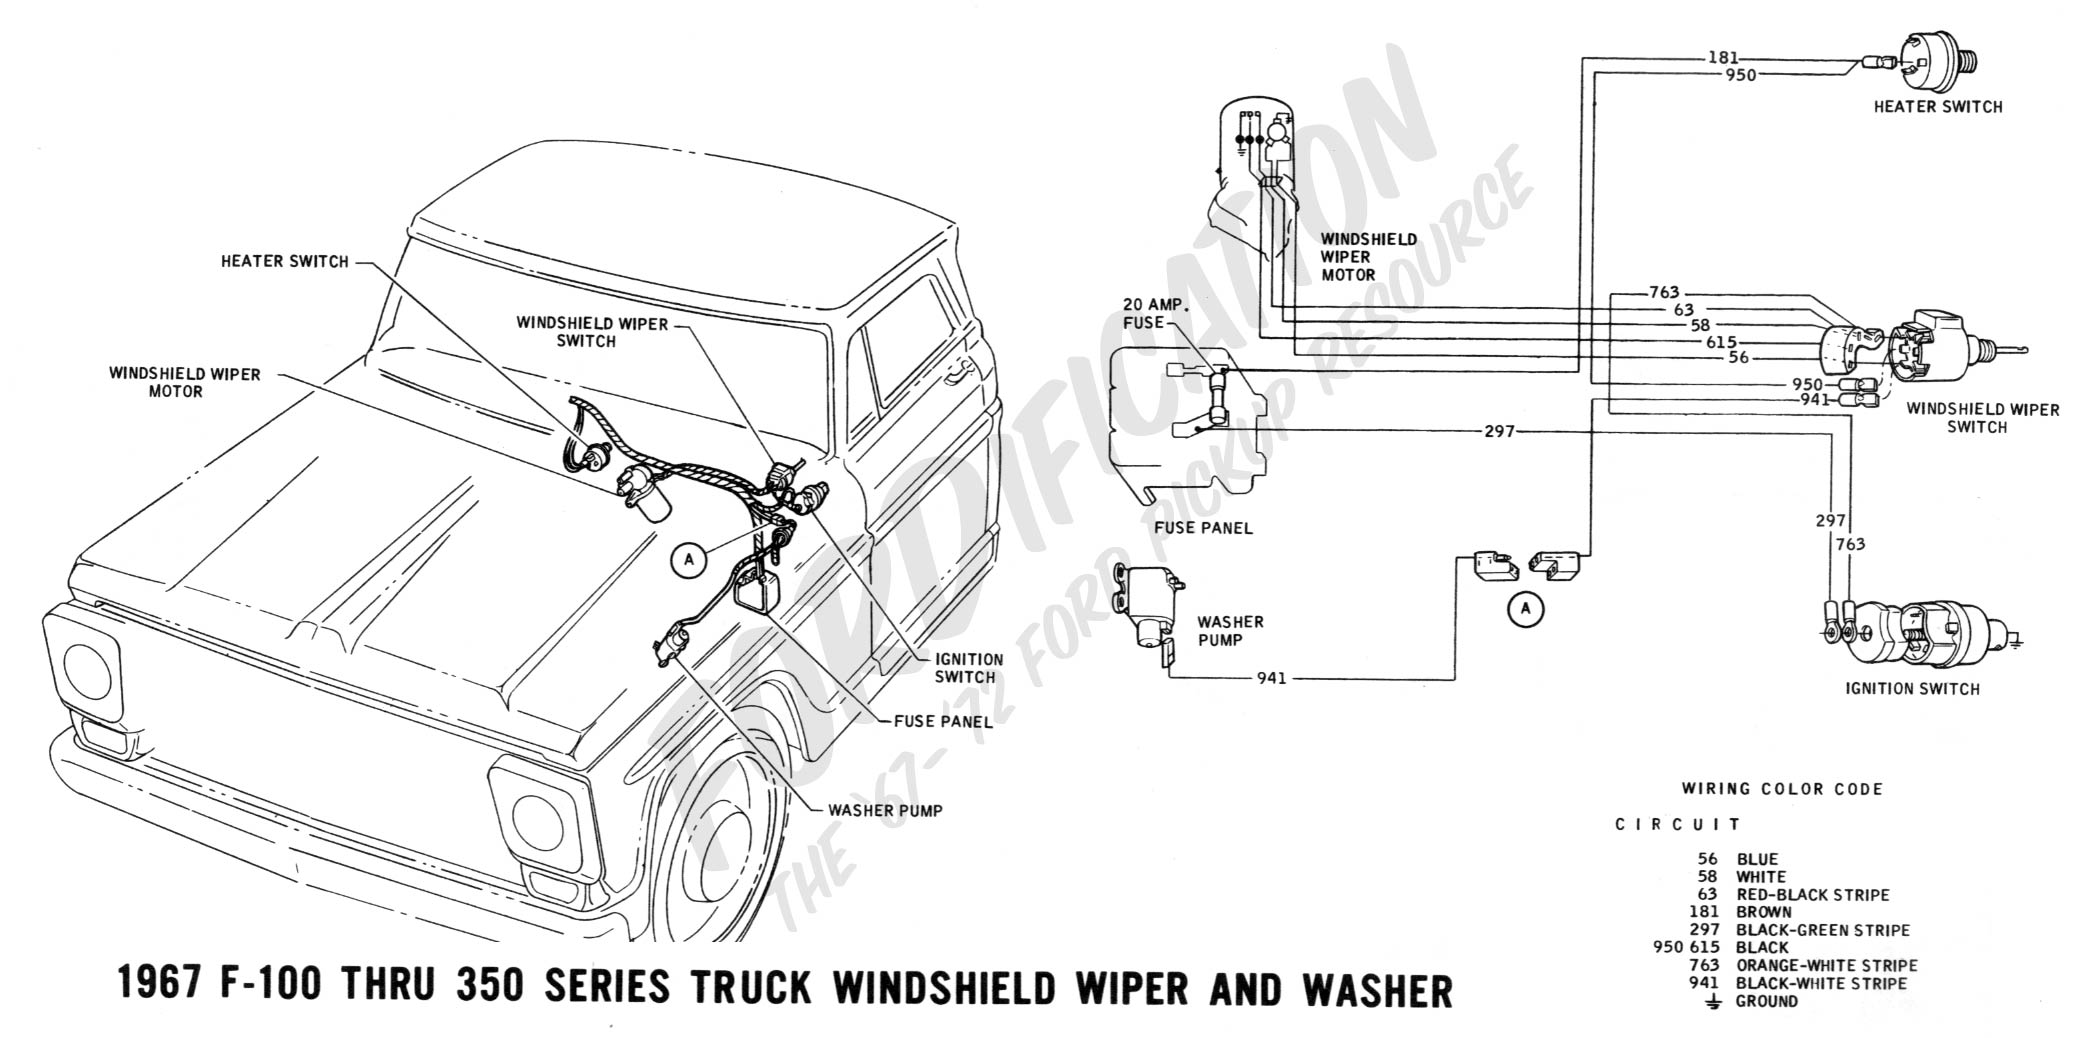 72 Chevy Truck Steering Column Diagram Free Download Wiring Diagram